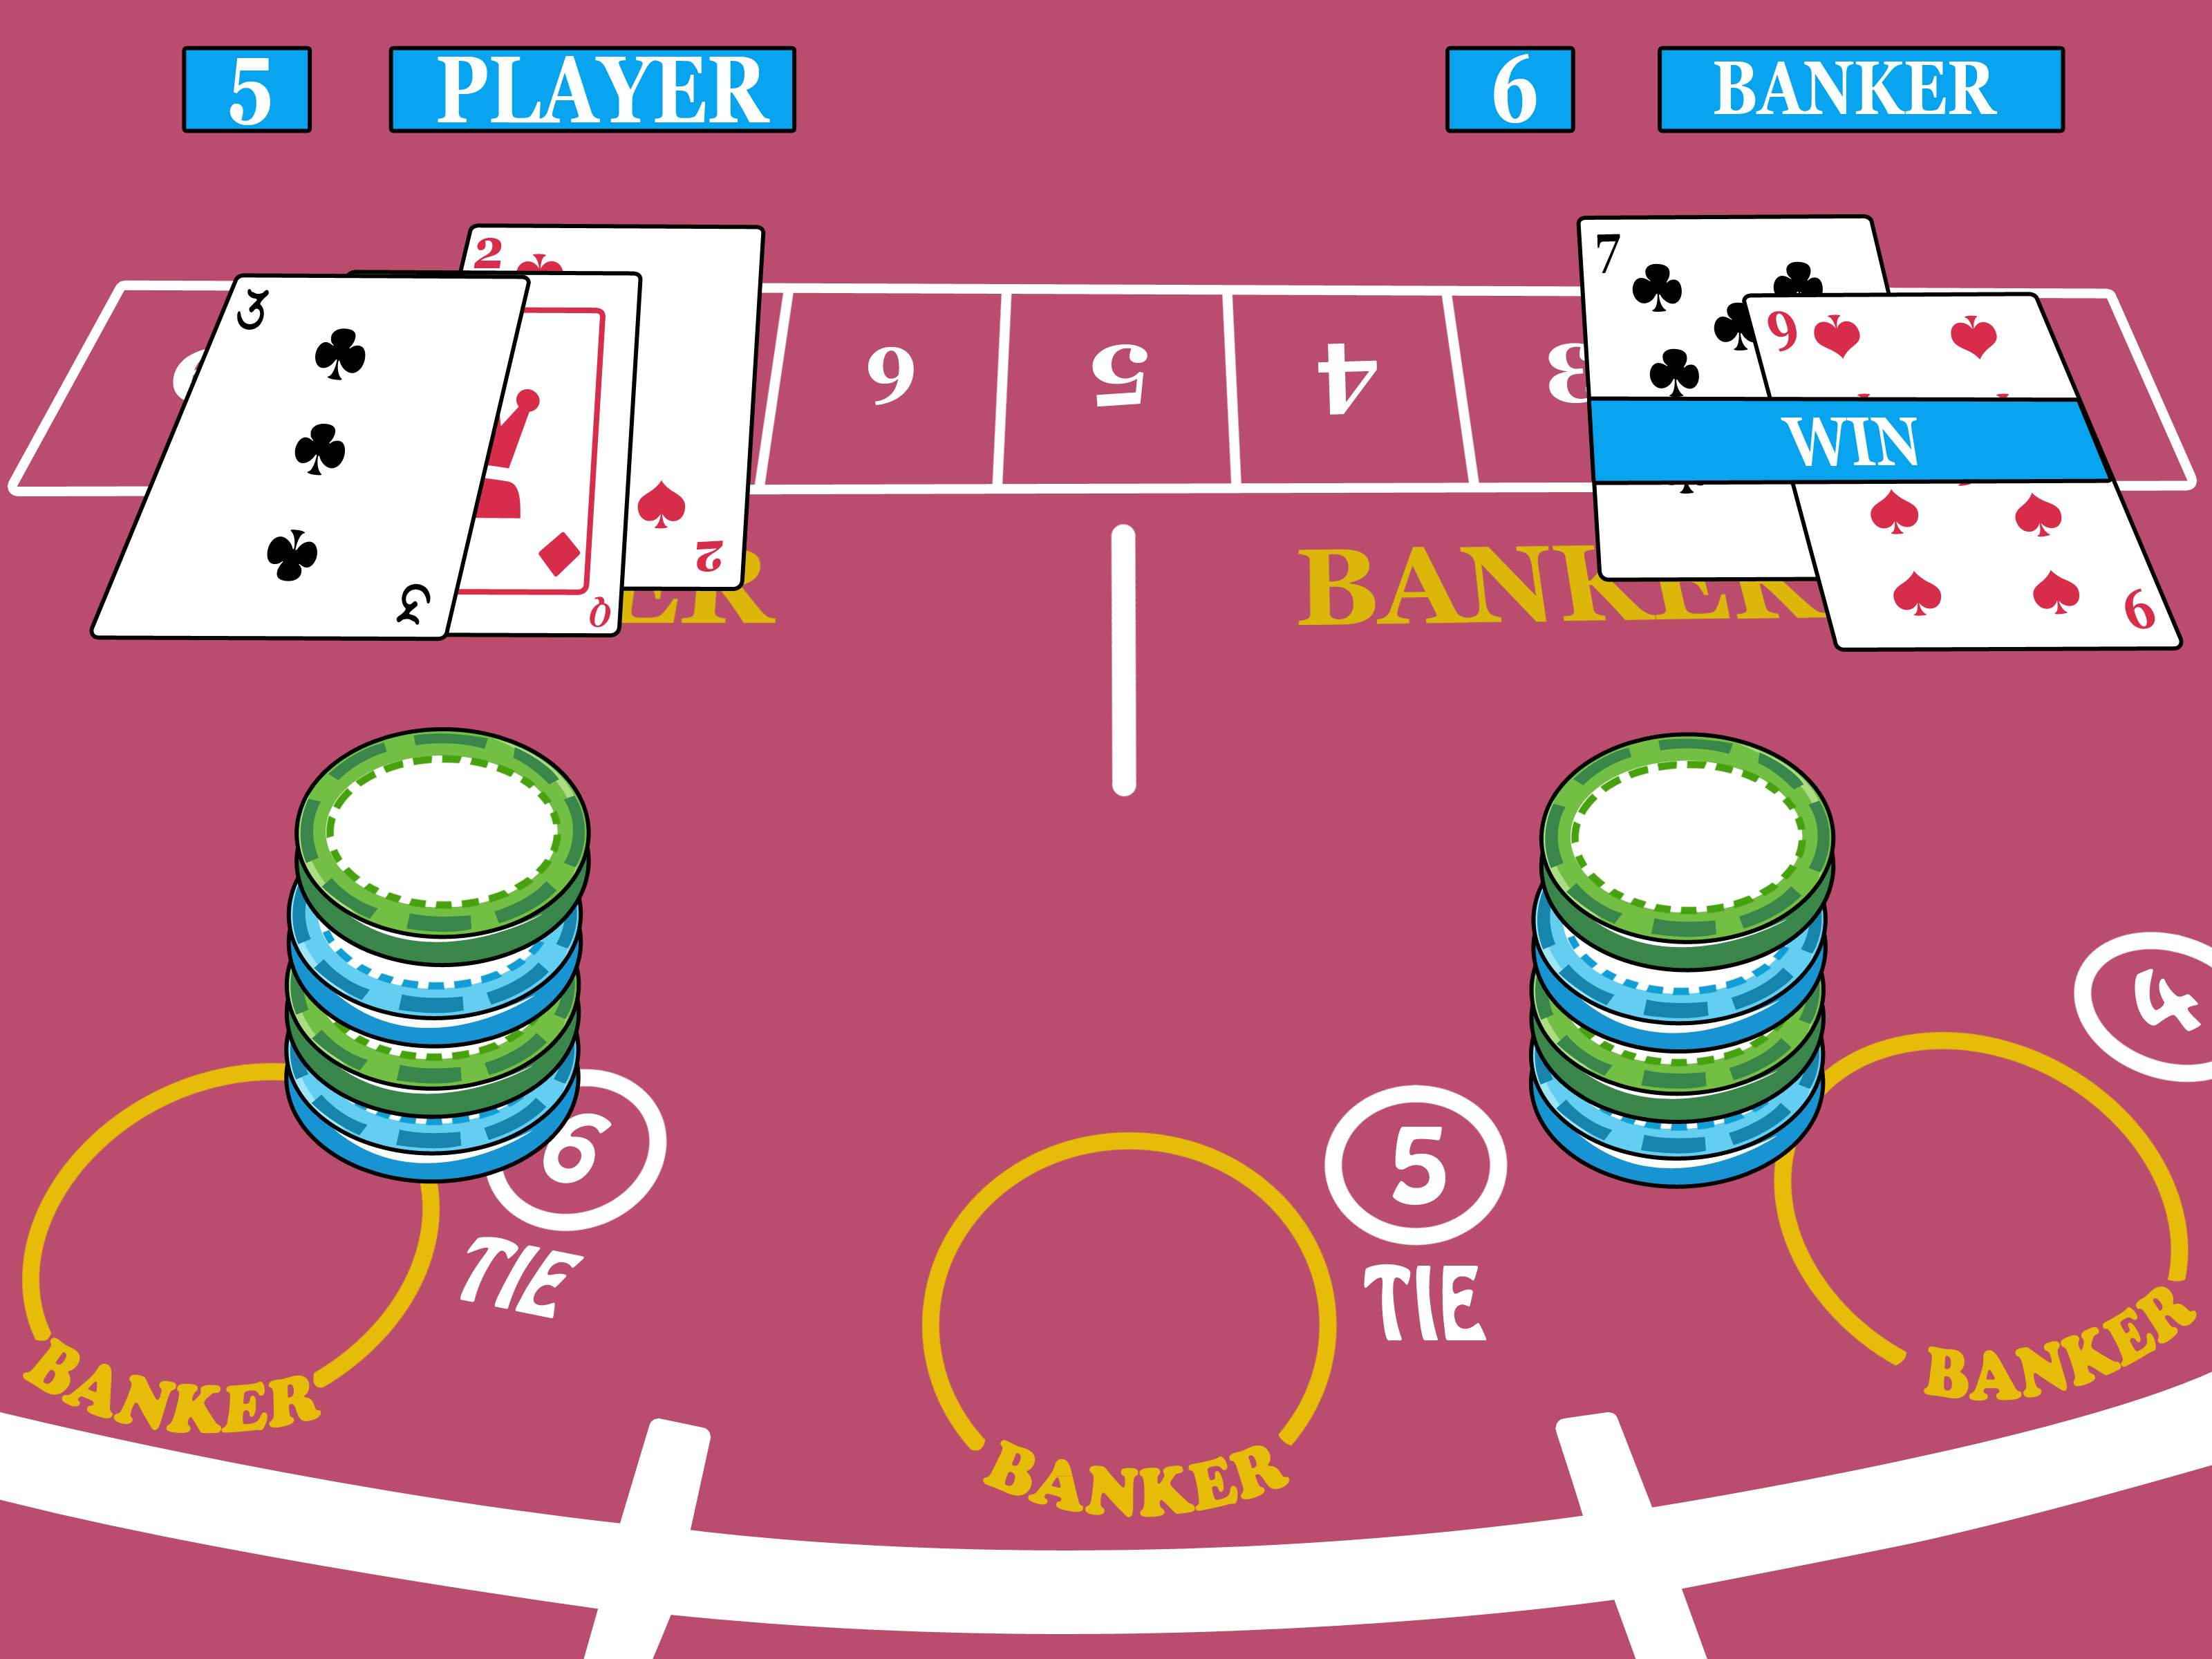 Play Baccarat Games Free.The rules of Baccarat are set up in a way that the game is very easy to learn to play, and you can even achieve a respectable payout rate compared to other casino table games without having to learn any kind of real strategy if you just stick to the banker bet.However, if you want to really advance past the beginner stage and improve with expert strategies, then you.